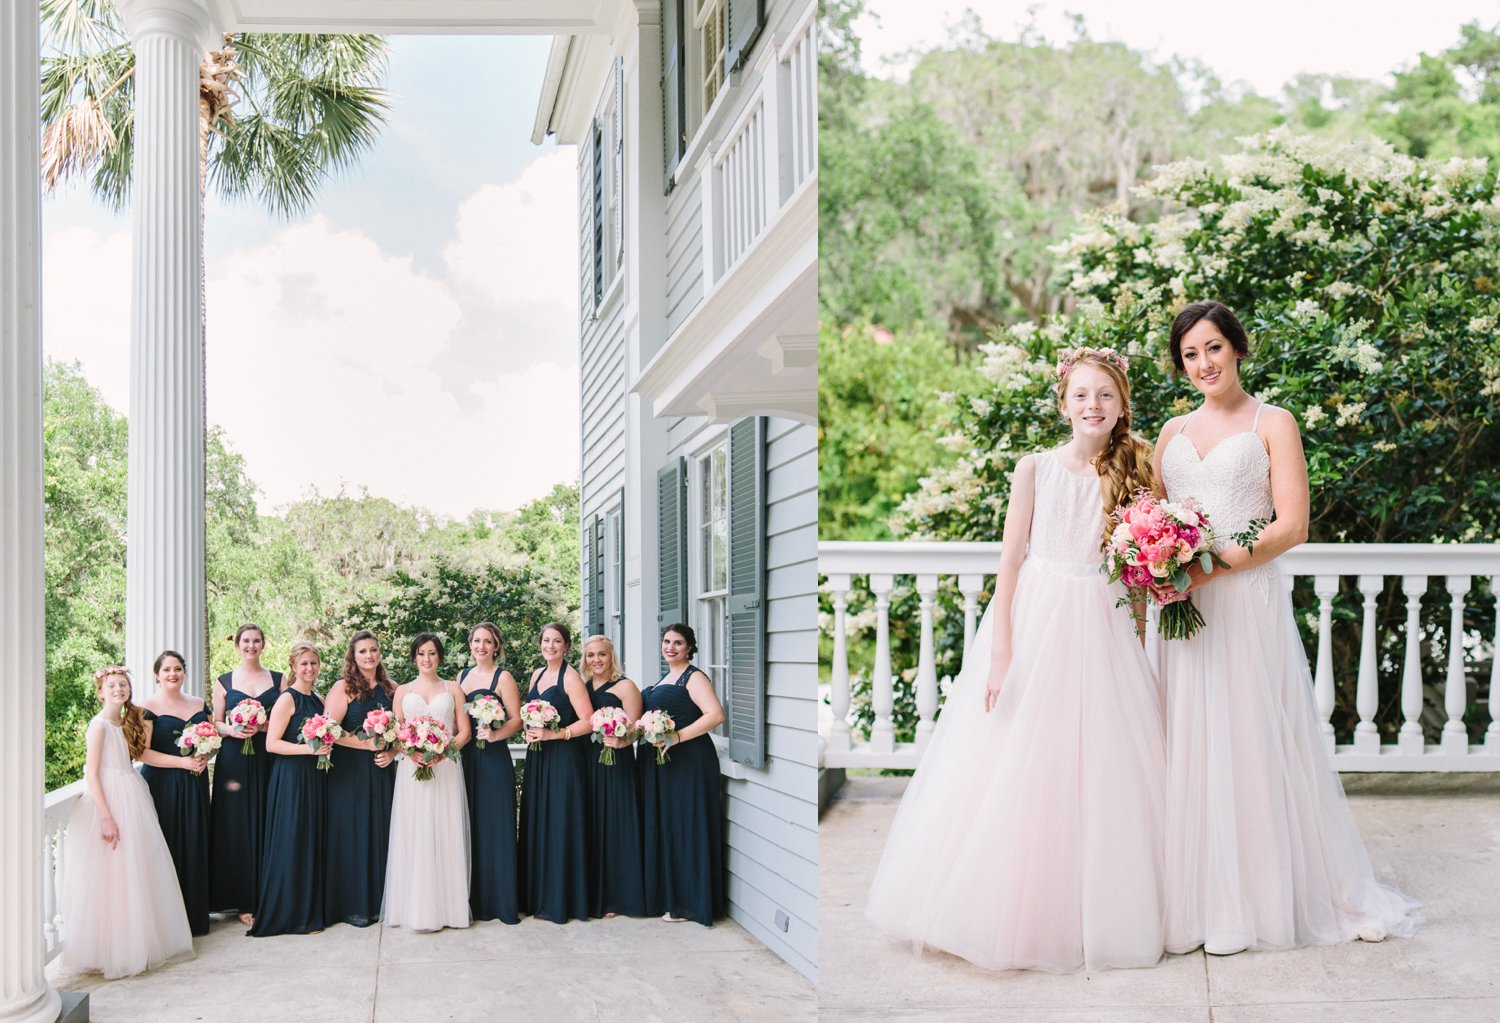 Lindsey_A_Miller_Photography_mcleod_plantation_wedding_charleston_south_carolina_clear_tent_spring_mod_events_051.jpg